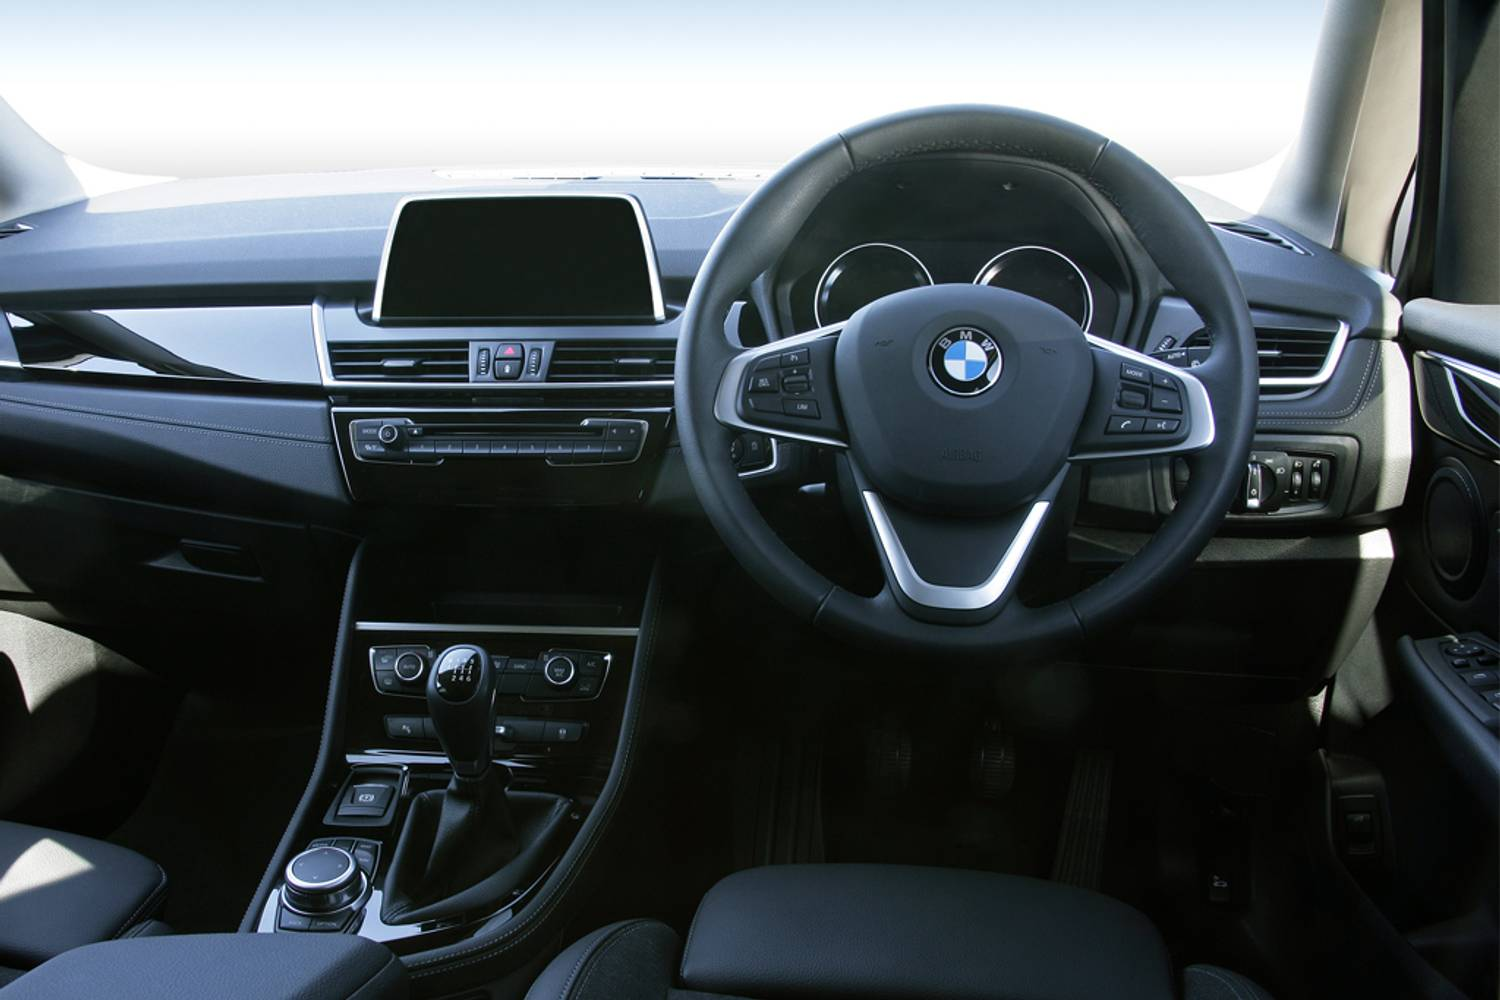 BMW 2 Series Gran Tourer 5dr interior